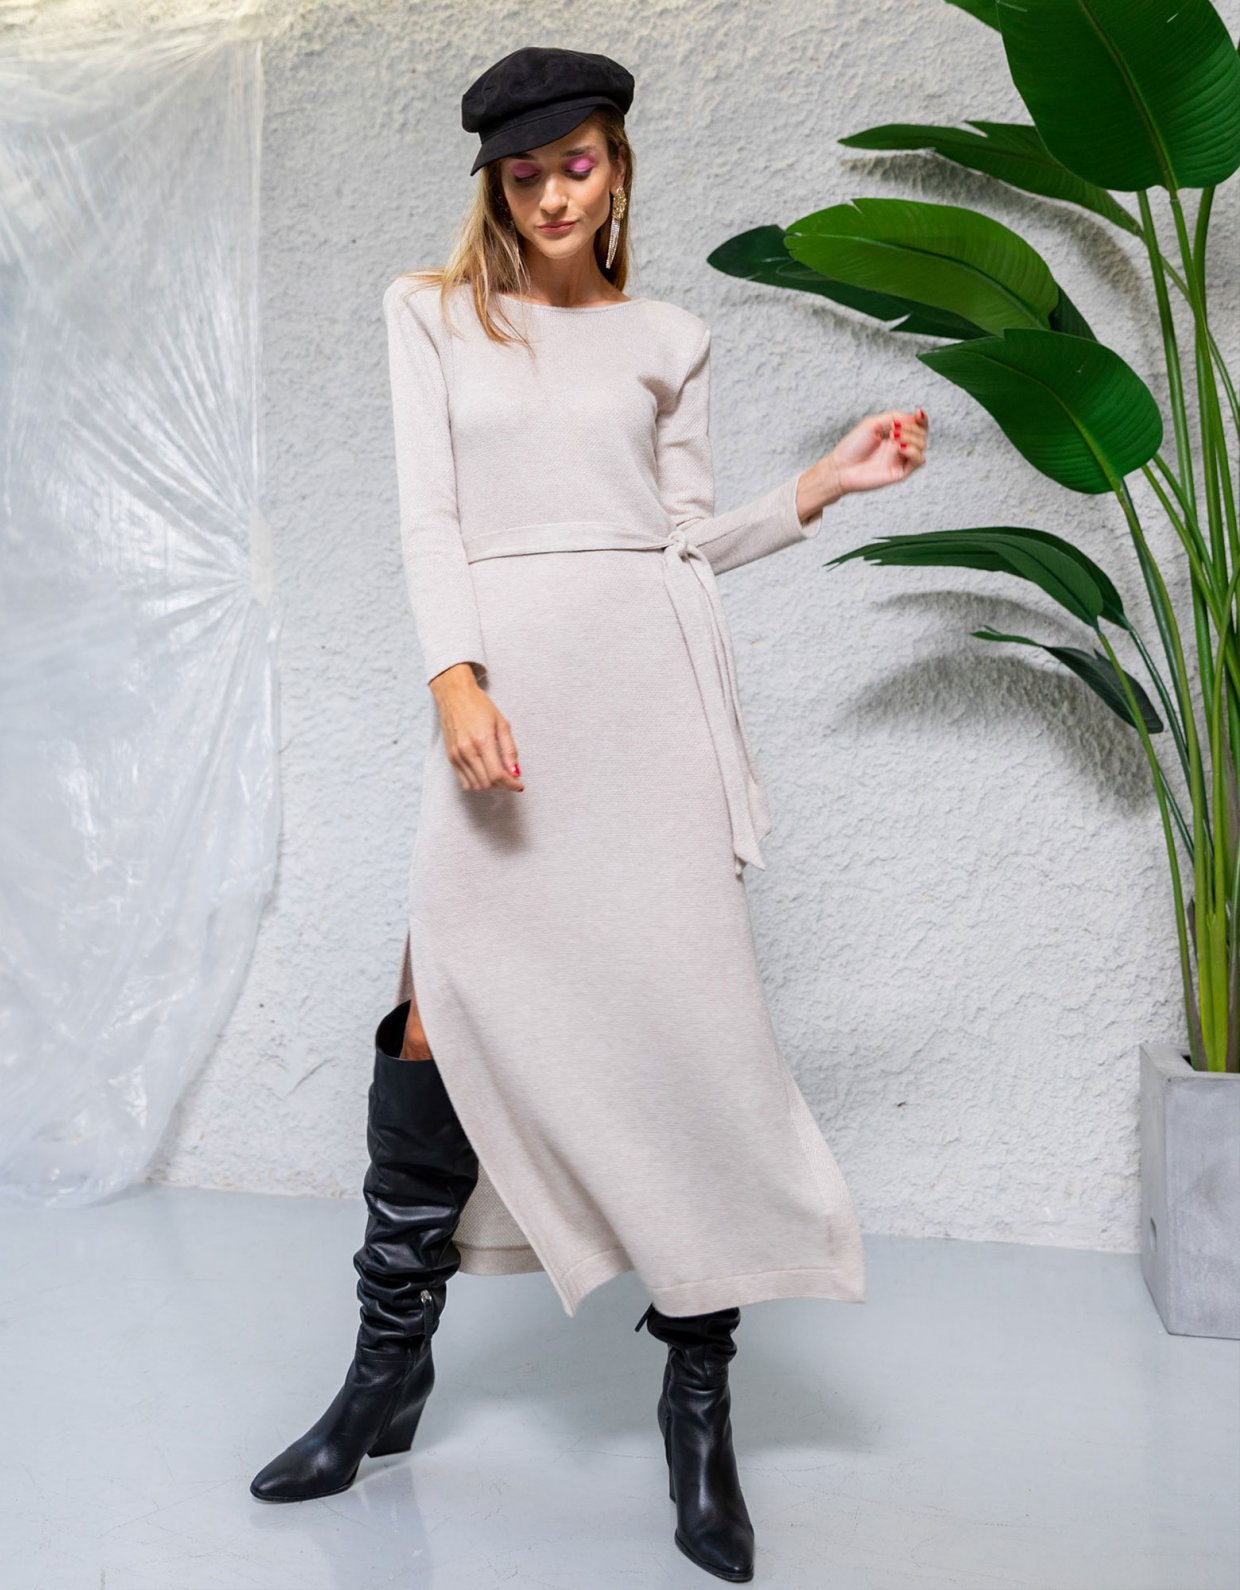 The Knl's Illusion ecru knitted dress